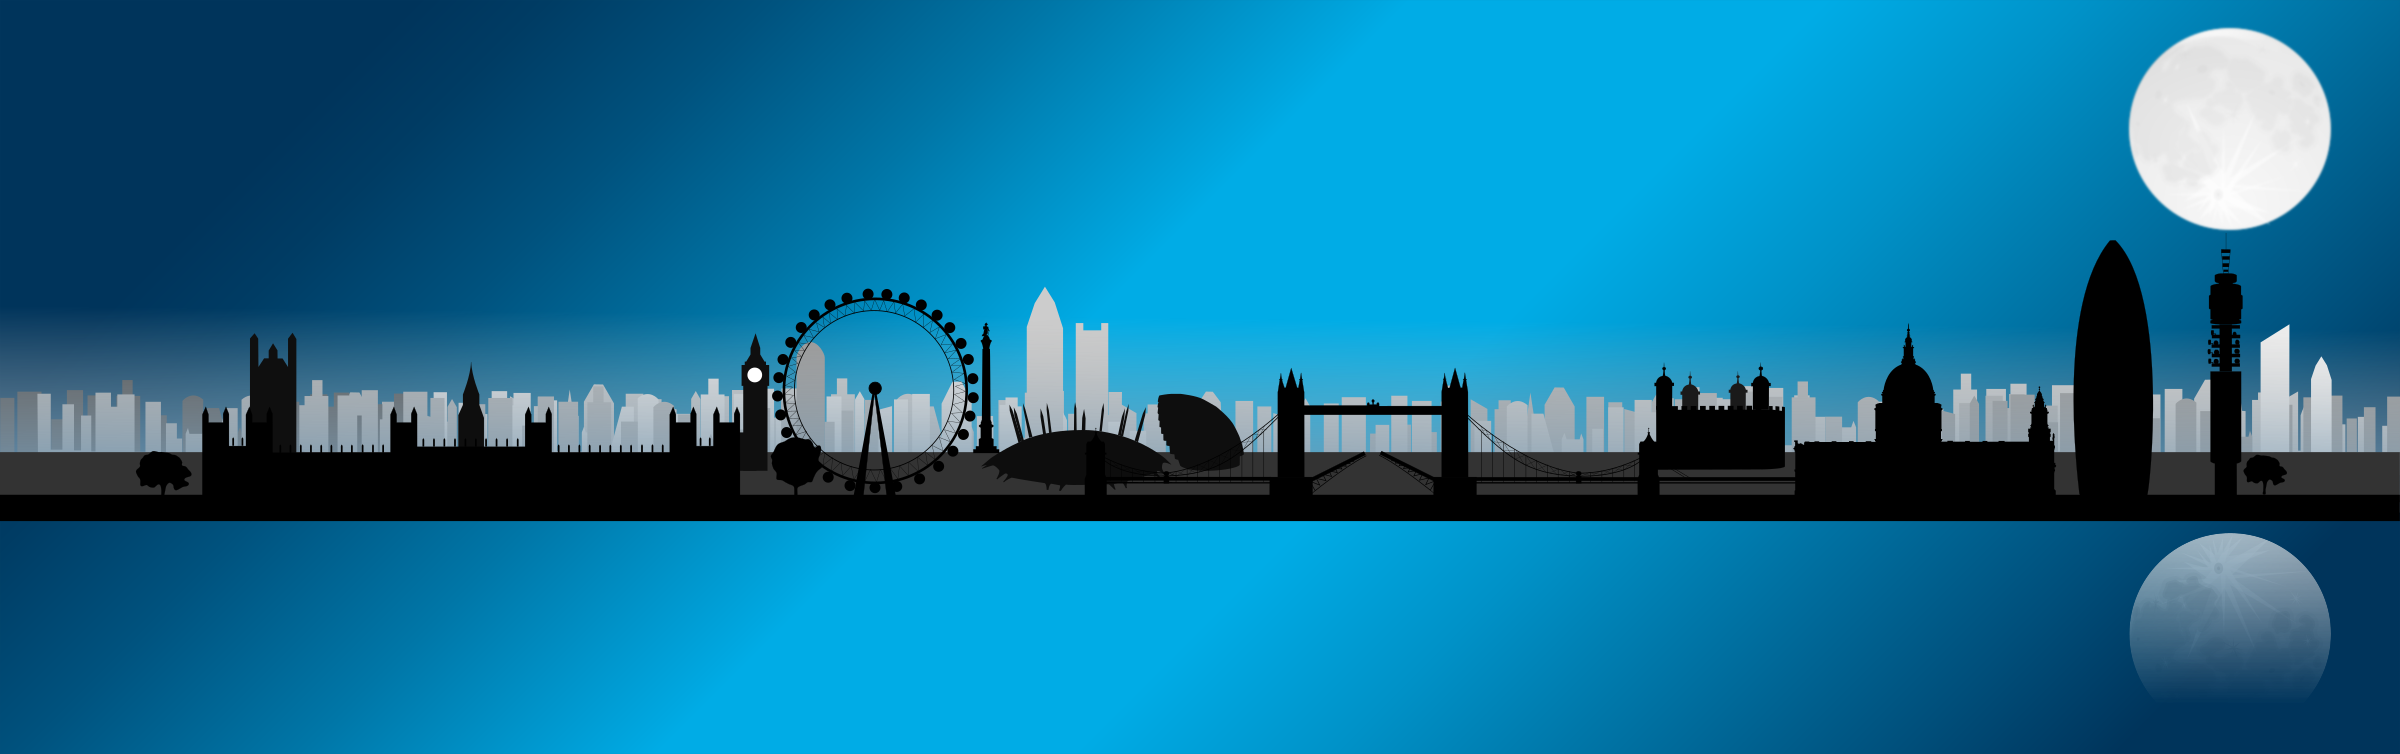 List of synonyms and antonyms of the word london skyline clip art london skyline vector free download altavistaventures